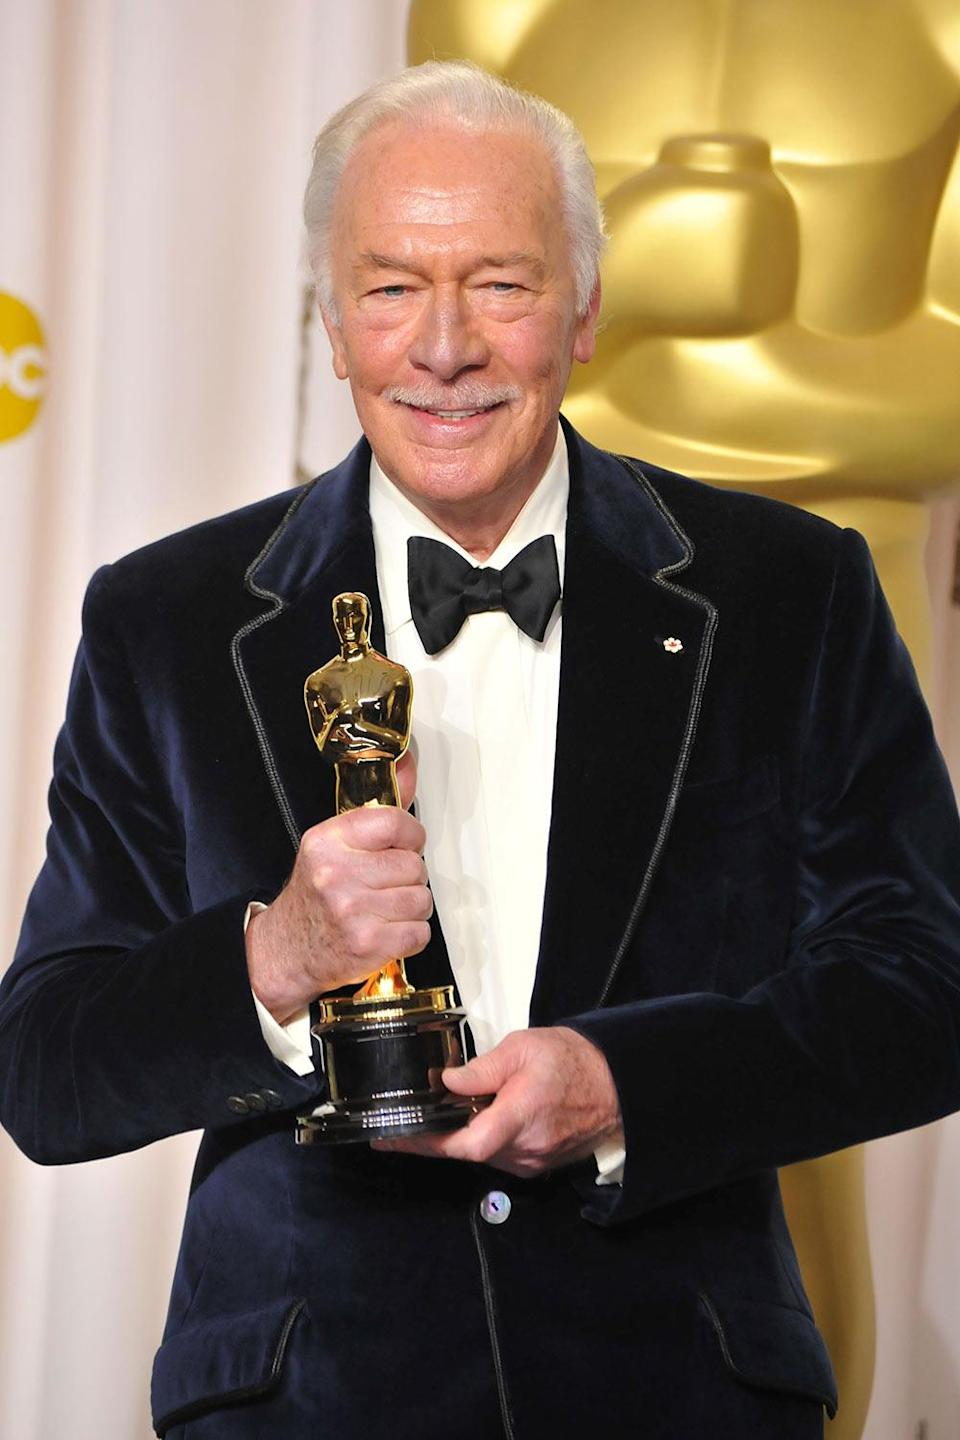 """<p>In 2009, Plummer finally received an Oscar nomination for <i>The Last Station</i>, and he <a href=""""http://www.peoplestylewatch.com/people/stylewatch/package/article/0,,20552373_20573873,00.html"""" rel=""""nofollow noopener"""" target=""""_blank"""" data-ylk=""""slk:took home the Oscar for Best Supporting Actor"""" class=""""link rapid-noclick-resp"""">took home the Oscar for Best Supporting Actor</a> in 2012 for his role in <i>Beginners</i>, in which he played an ailing elderly man who reveals that he's gay to his son. """"You're only two years older than me darling,"""" he jokingly said to his statuette upon accepting the Academy Award at the time. """"Where have you been all my life?"""" </p> <p>He was later nominated again for Best Supporting Actor at the 2018 Oscars for his performance in Ridley Scott's <i>All the Money in the World</i>.</p>"""